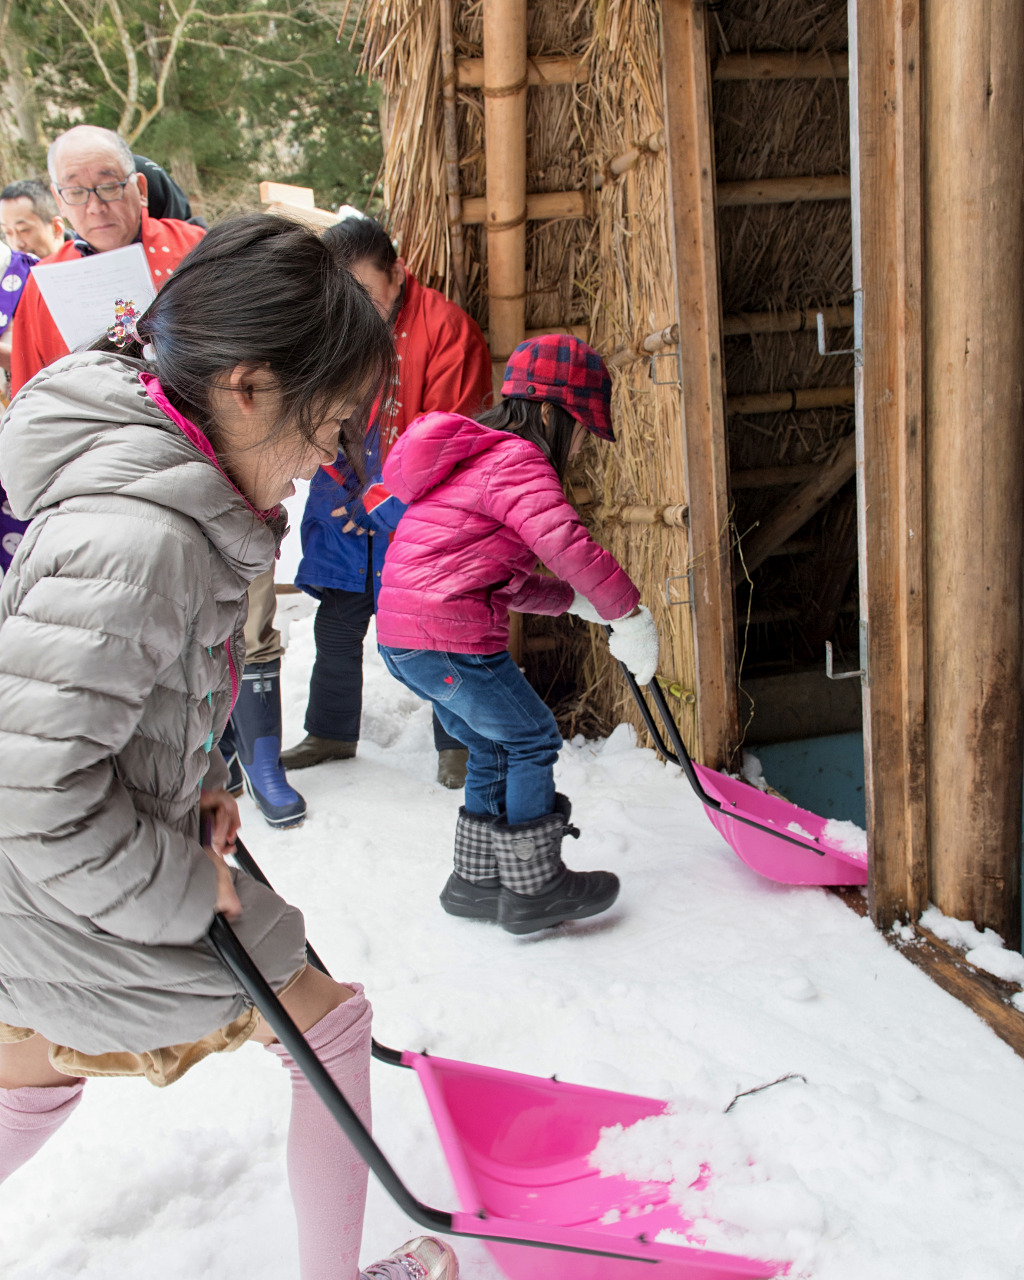 Children shoveling snow into the Himuro Koya in Yuwaku